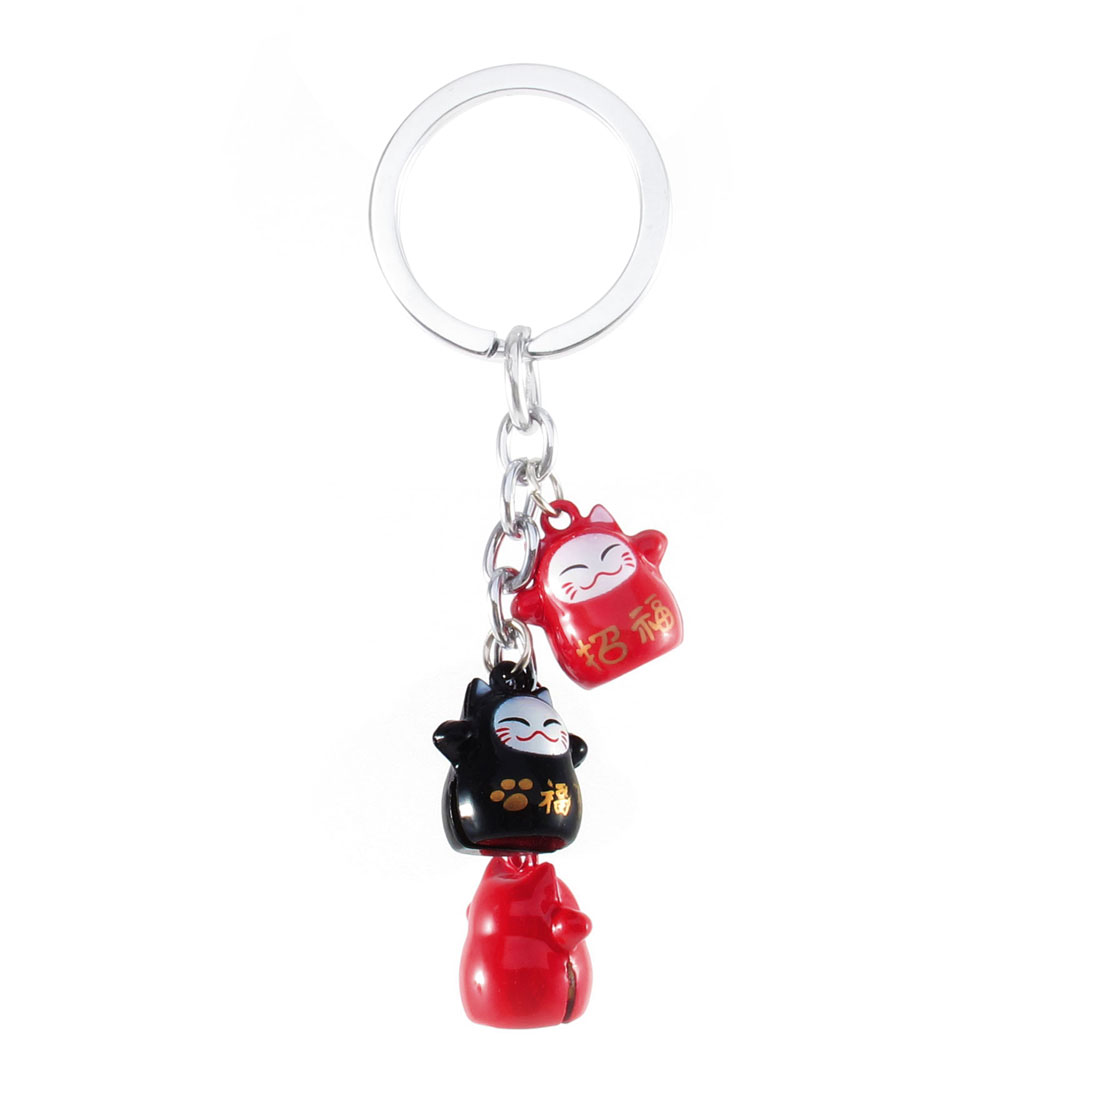 Black Red 3 Dangling Cat Style Bells Ring Keychain Keyring